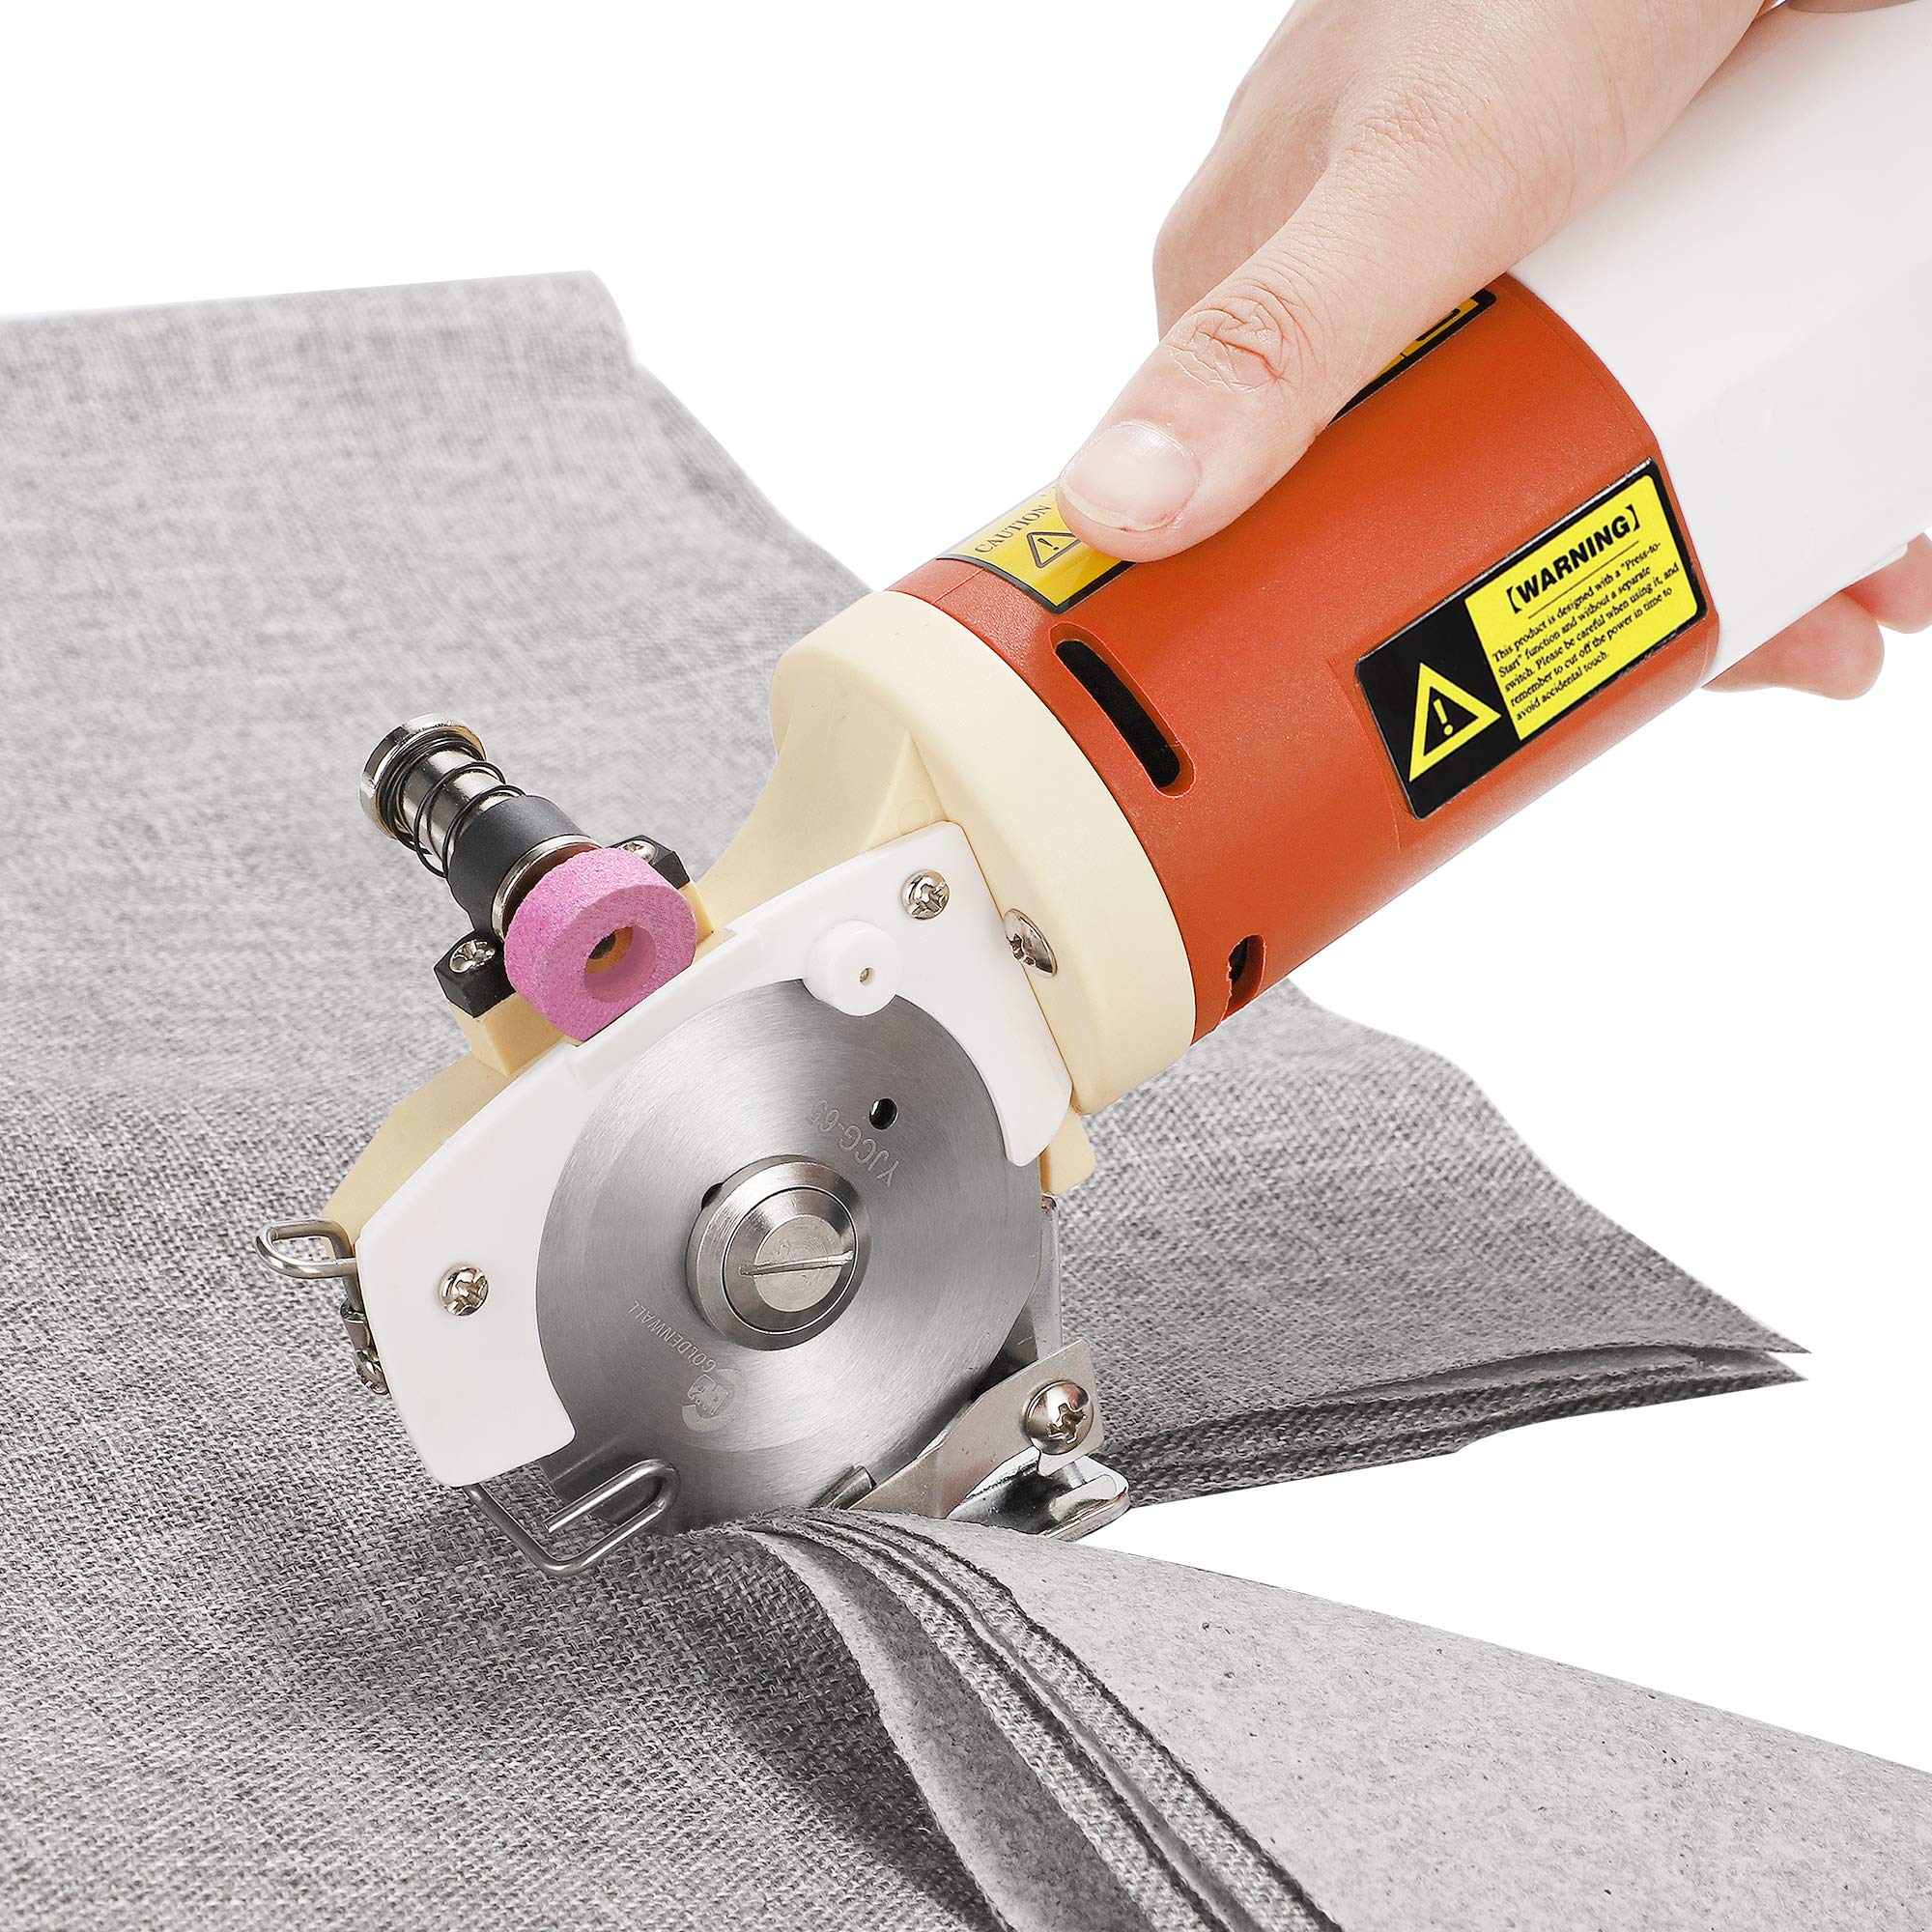 CGOLDENWALL YJ-65 Electric Rotary Fabric Cutter Scissors Cloth Cutting Machine Blade Size: 65mm Maximum Cutting Thickness: 22mm Ideal for Multi-Layer Clothing Textile Leather Paper with Spare Blade